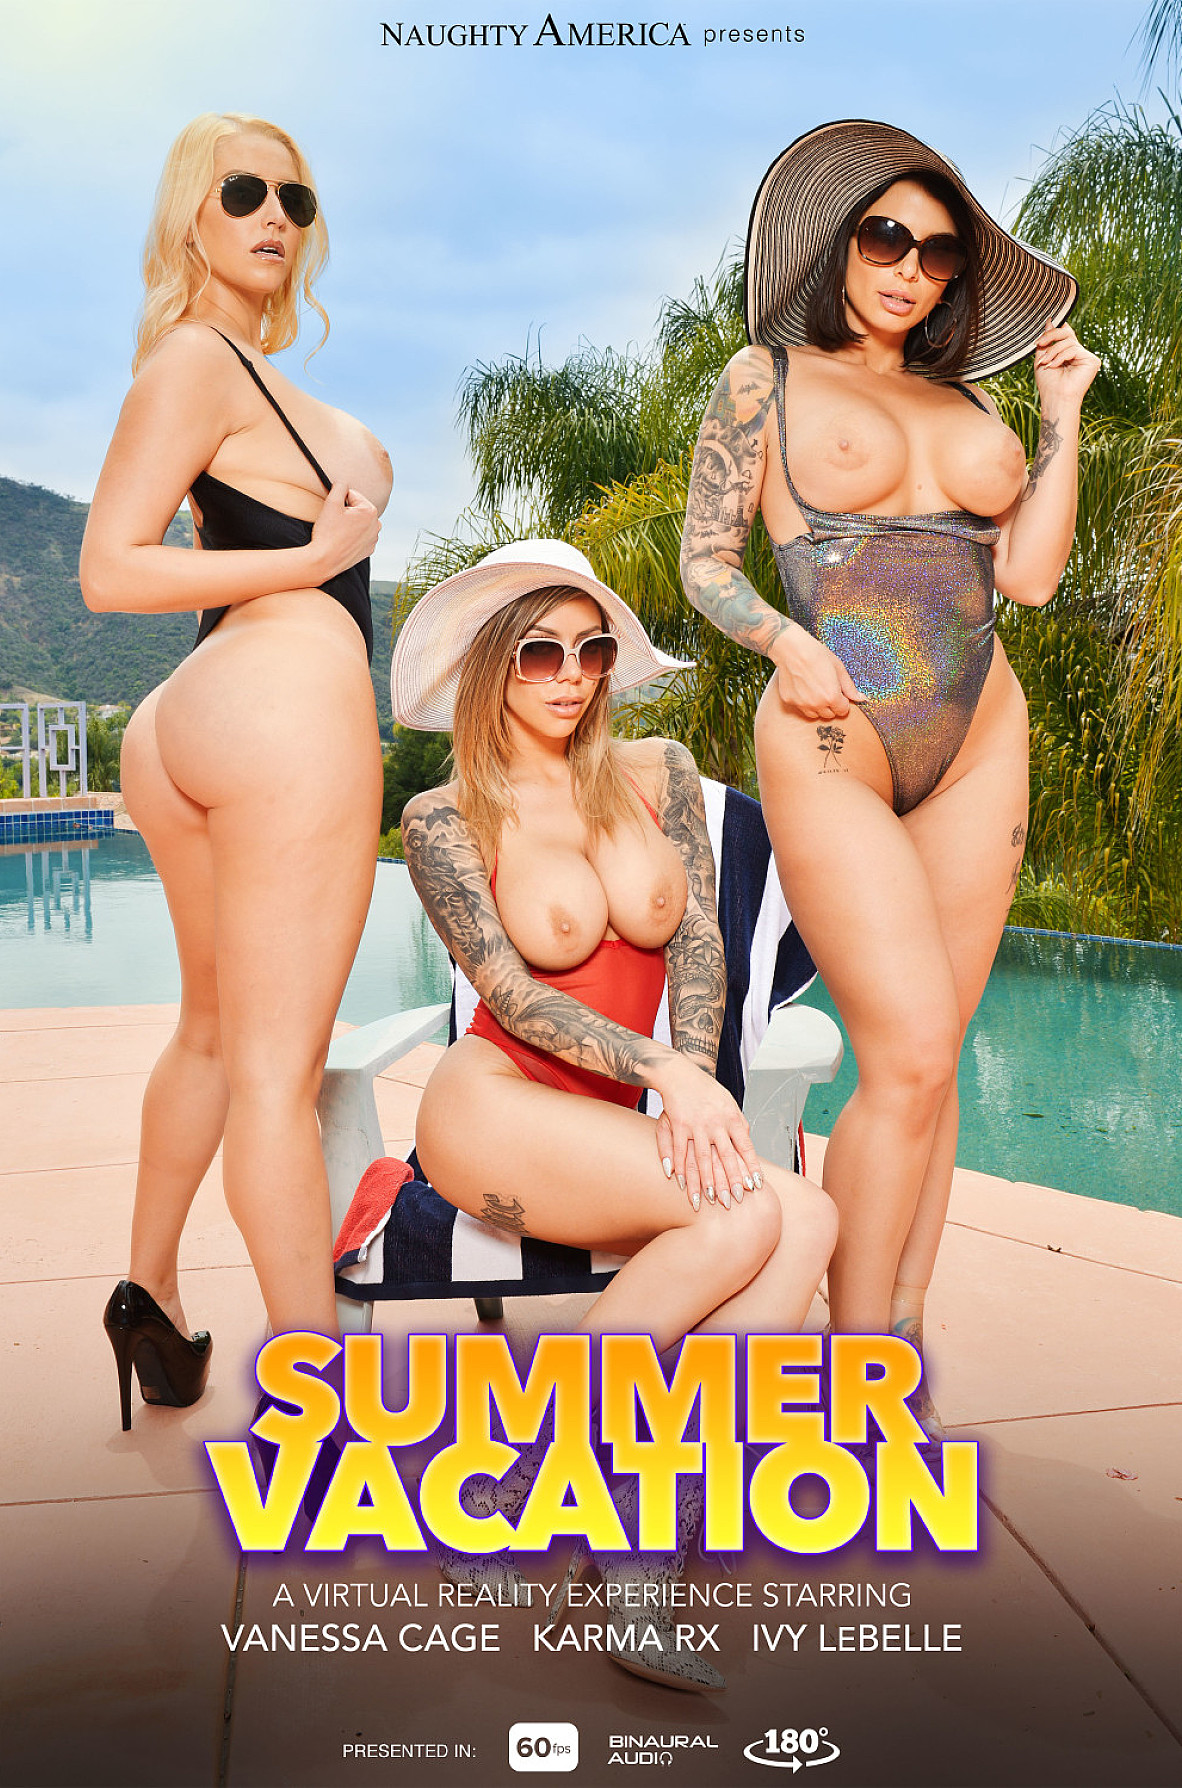 Watch Ivy LeBelle, Karma Rx, Vanessa Cage and Ryan Driller video in Naughty America